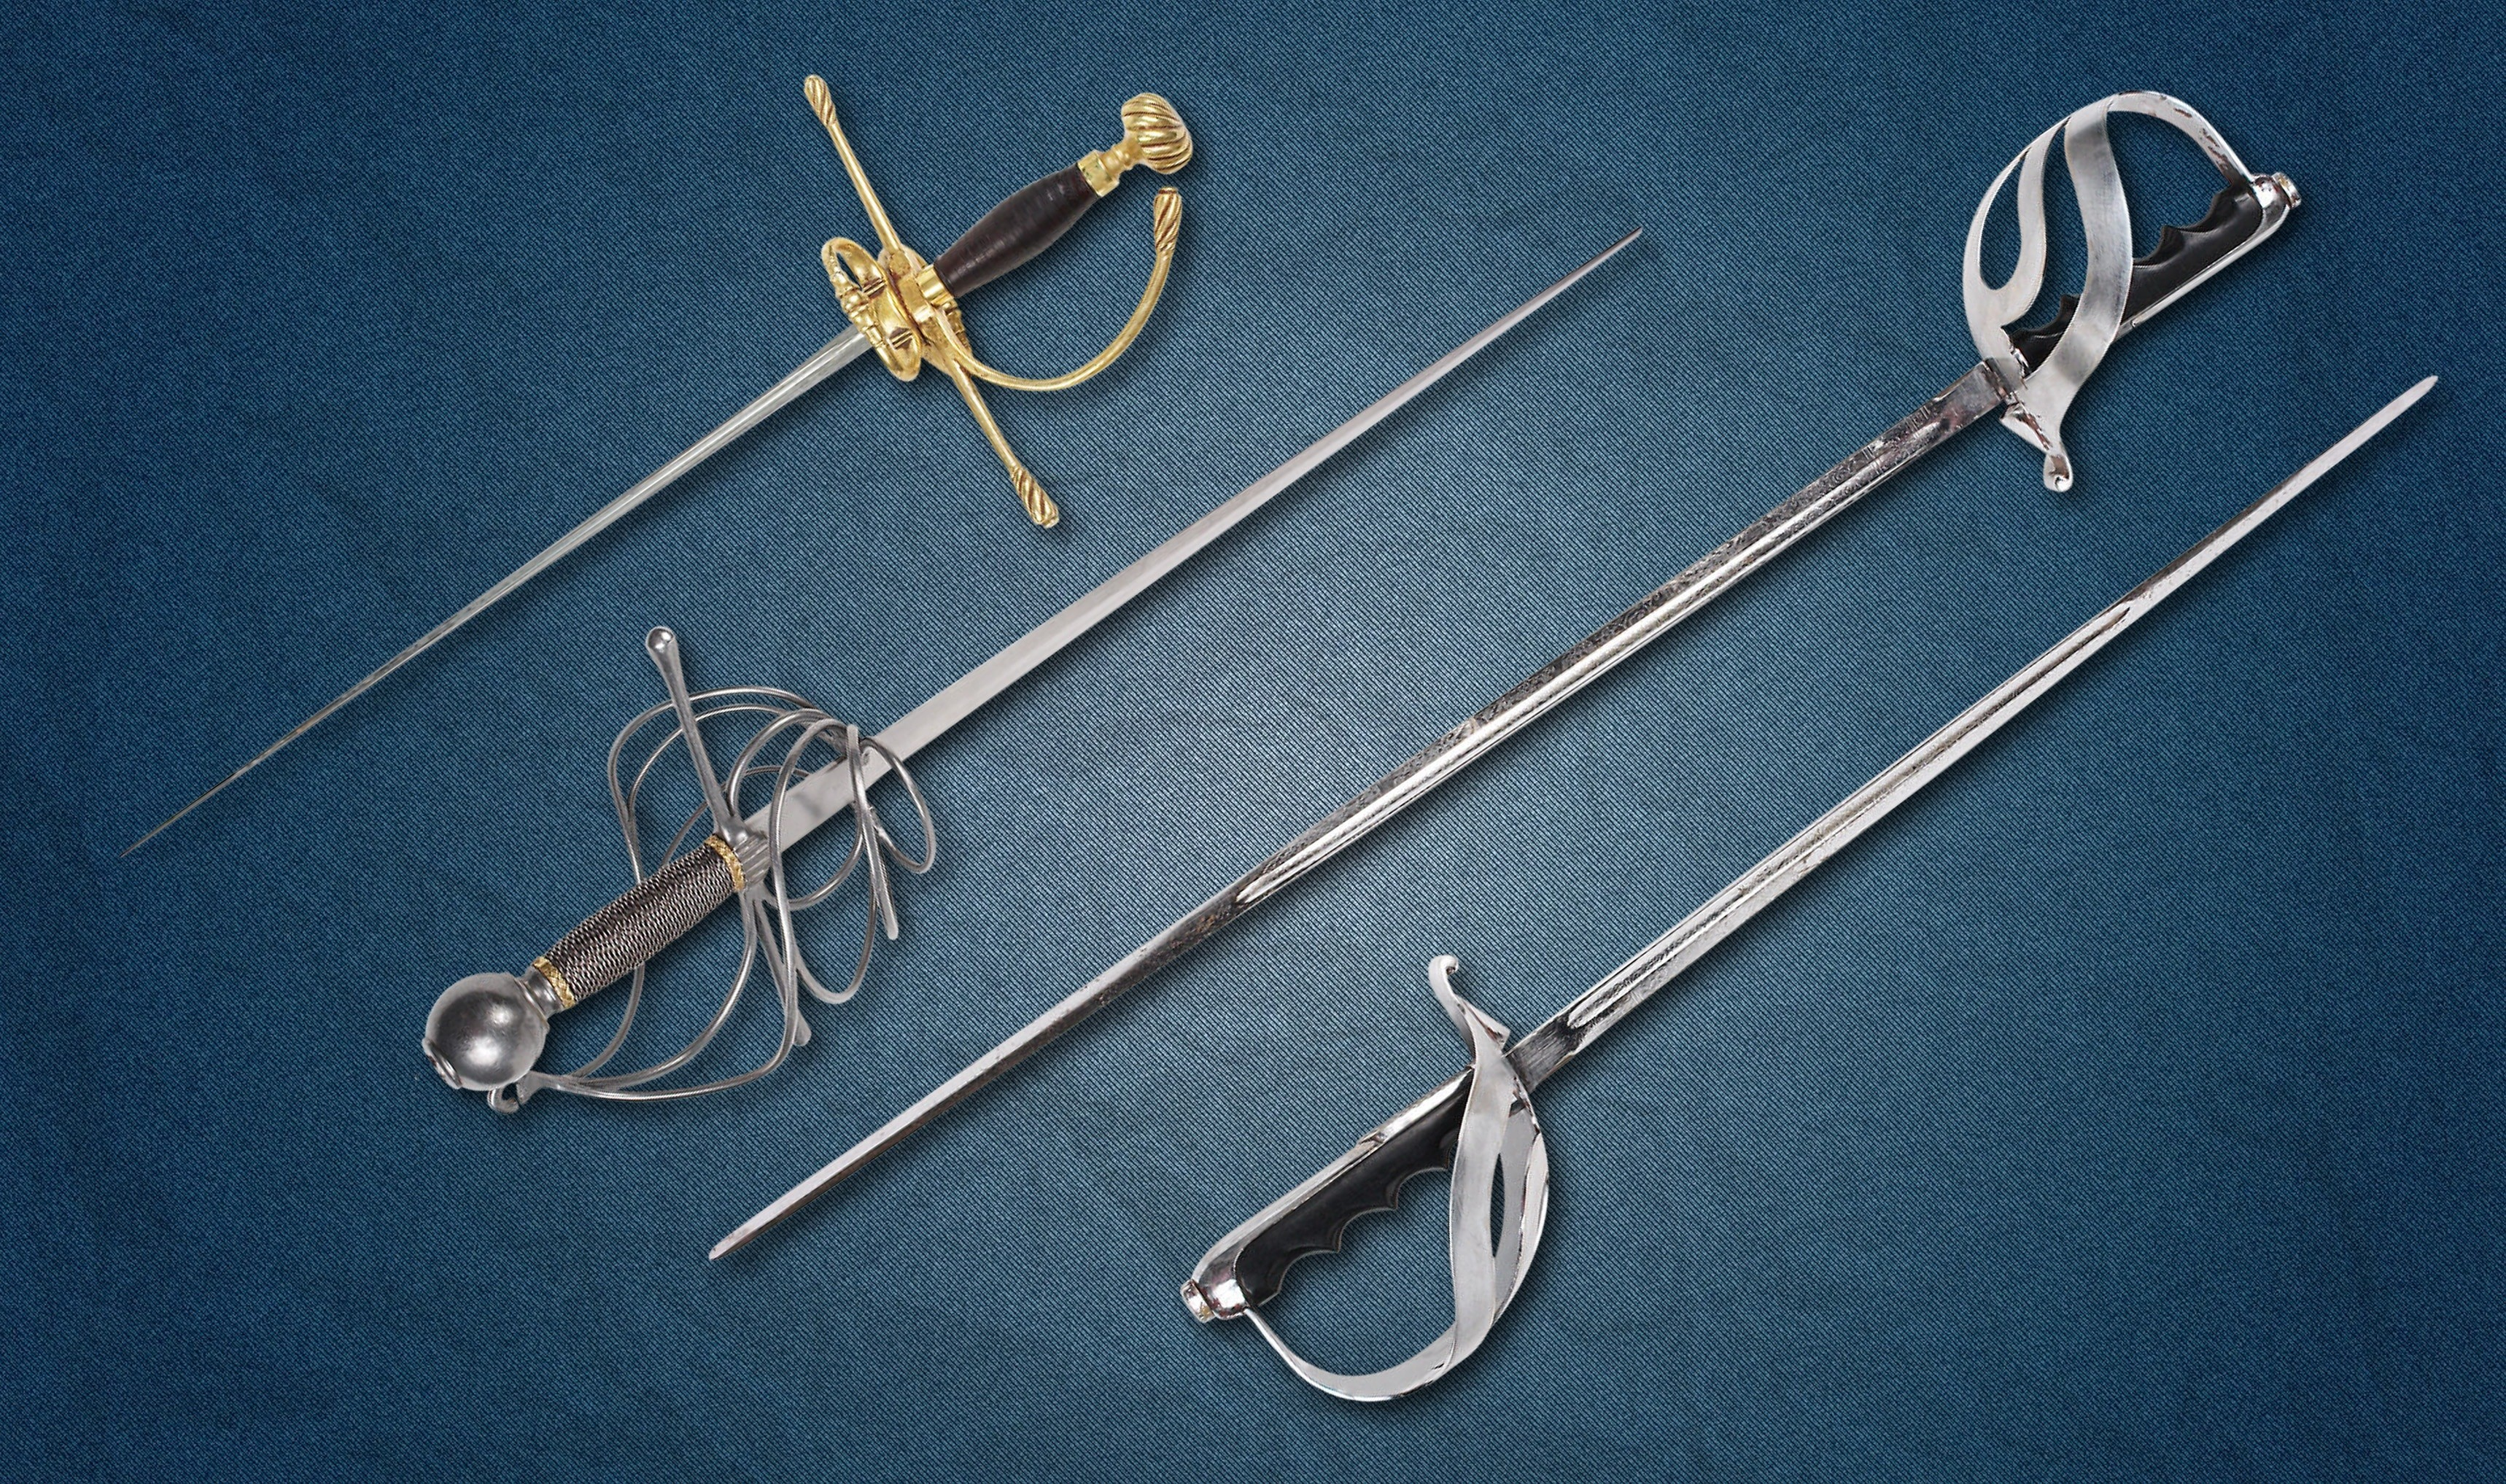 3436x2035 4 assorted sabres swords preview